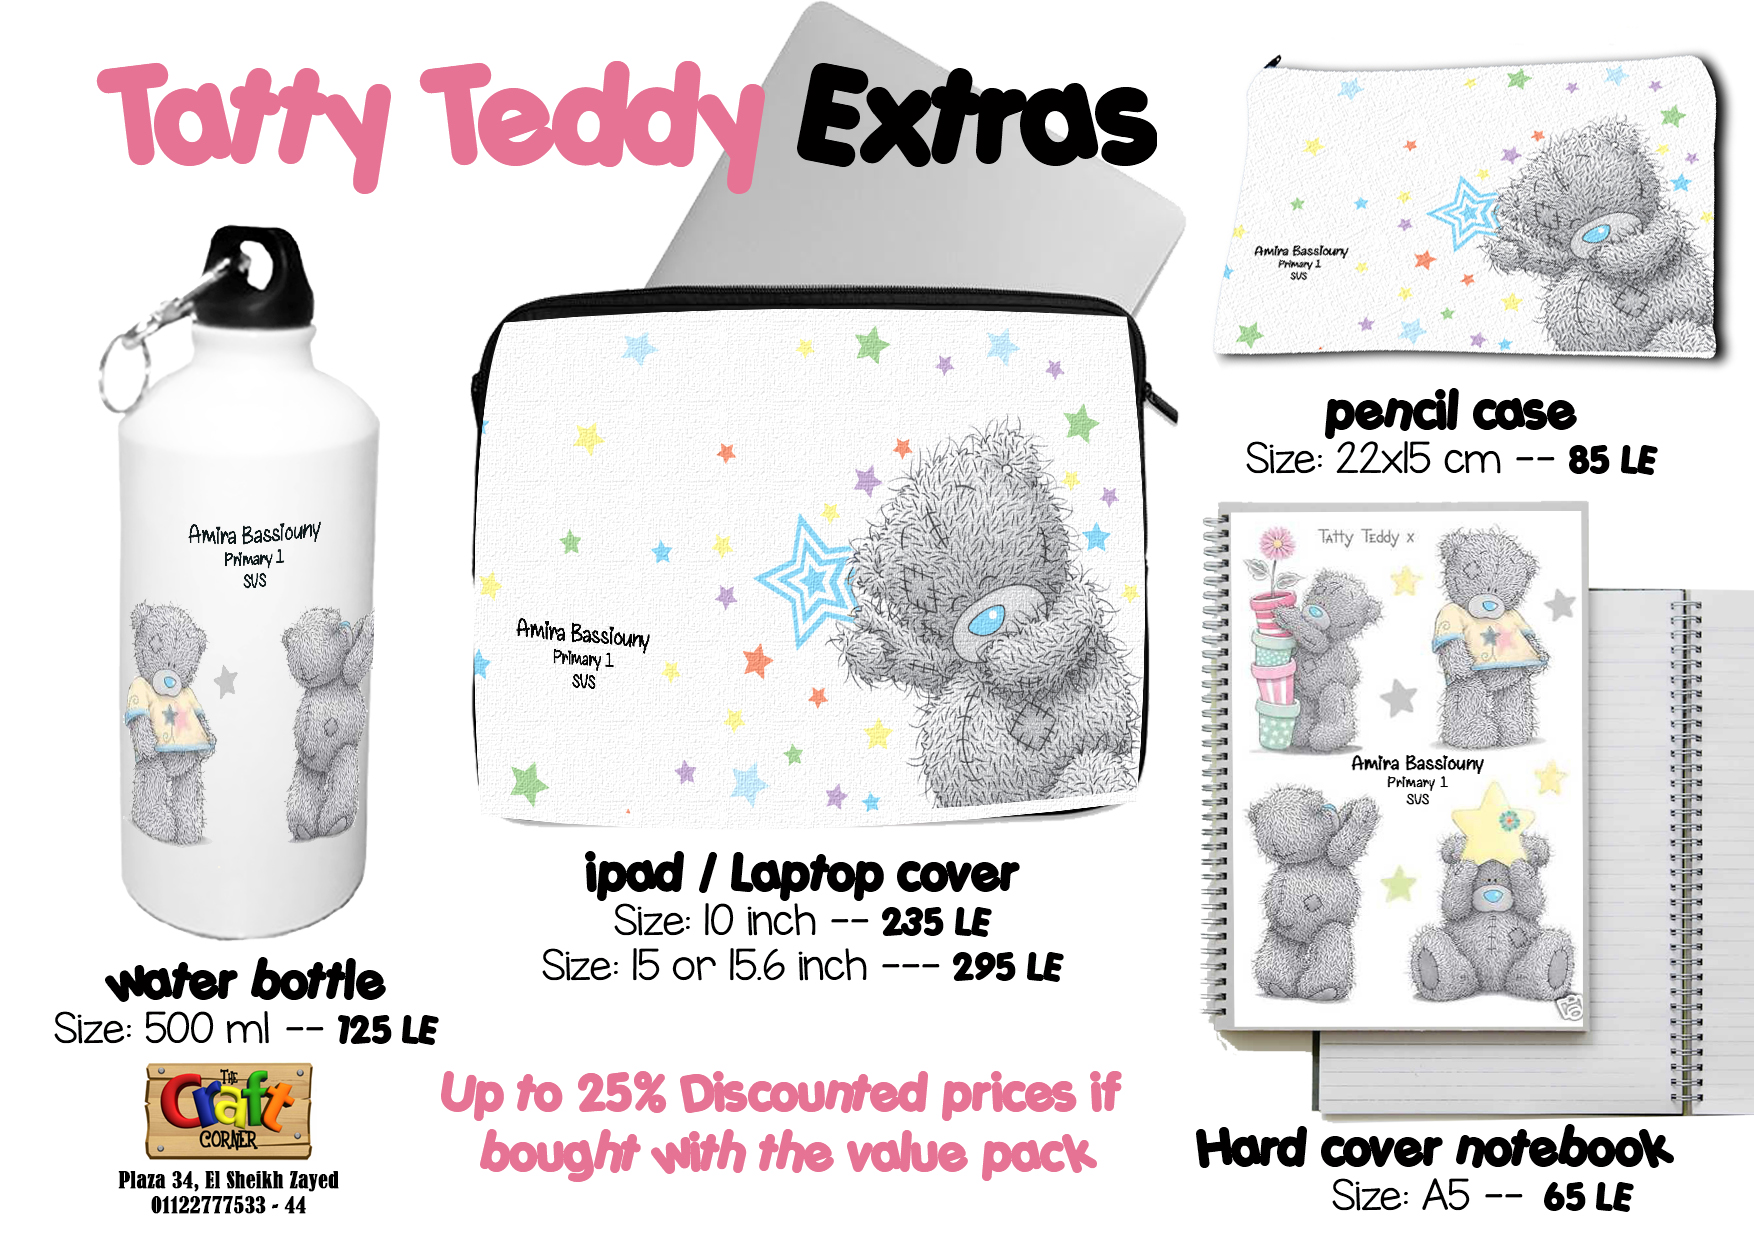 tatty teddy Extras